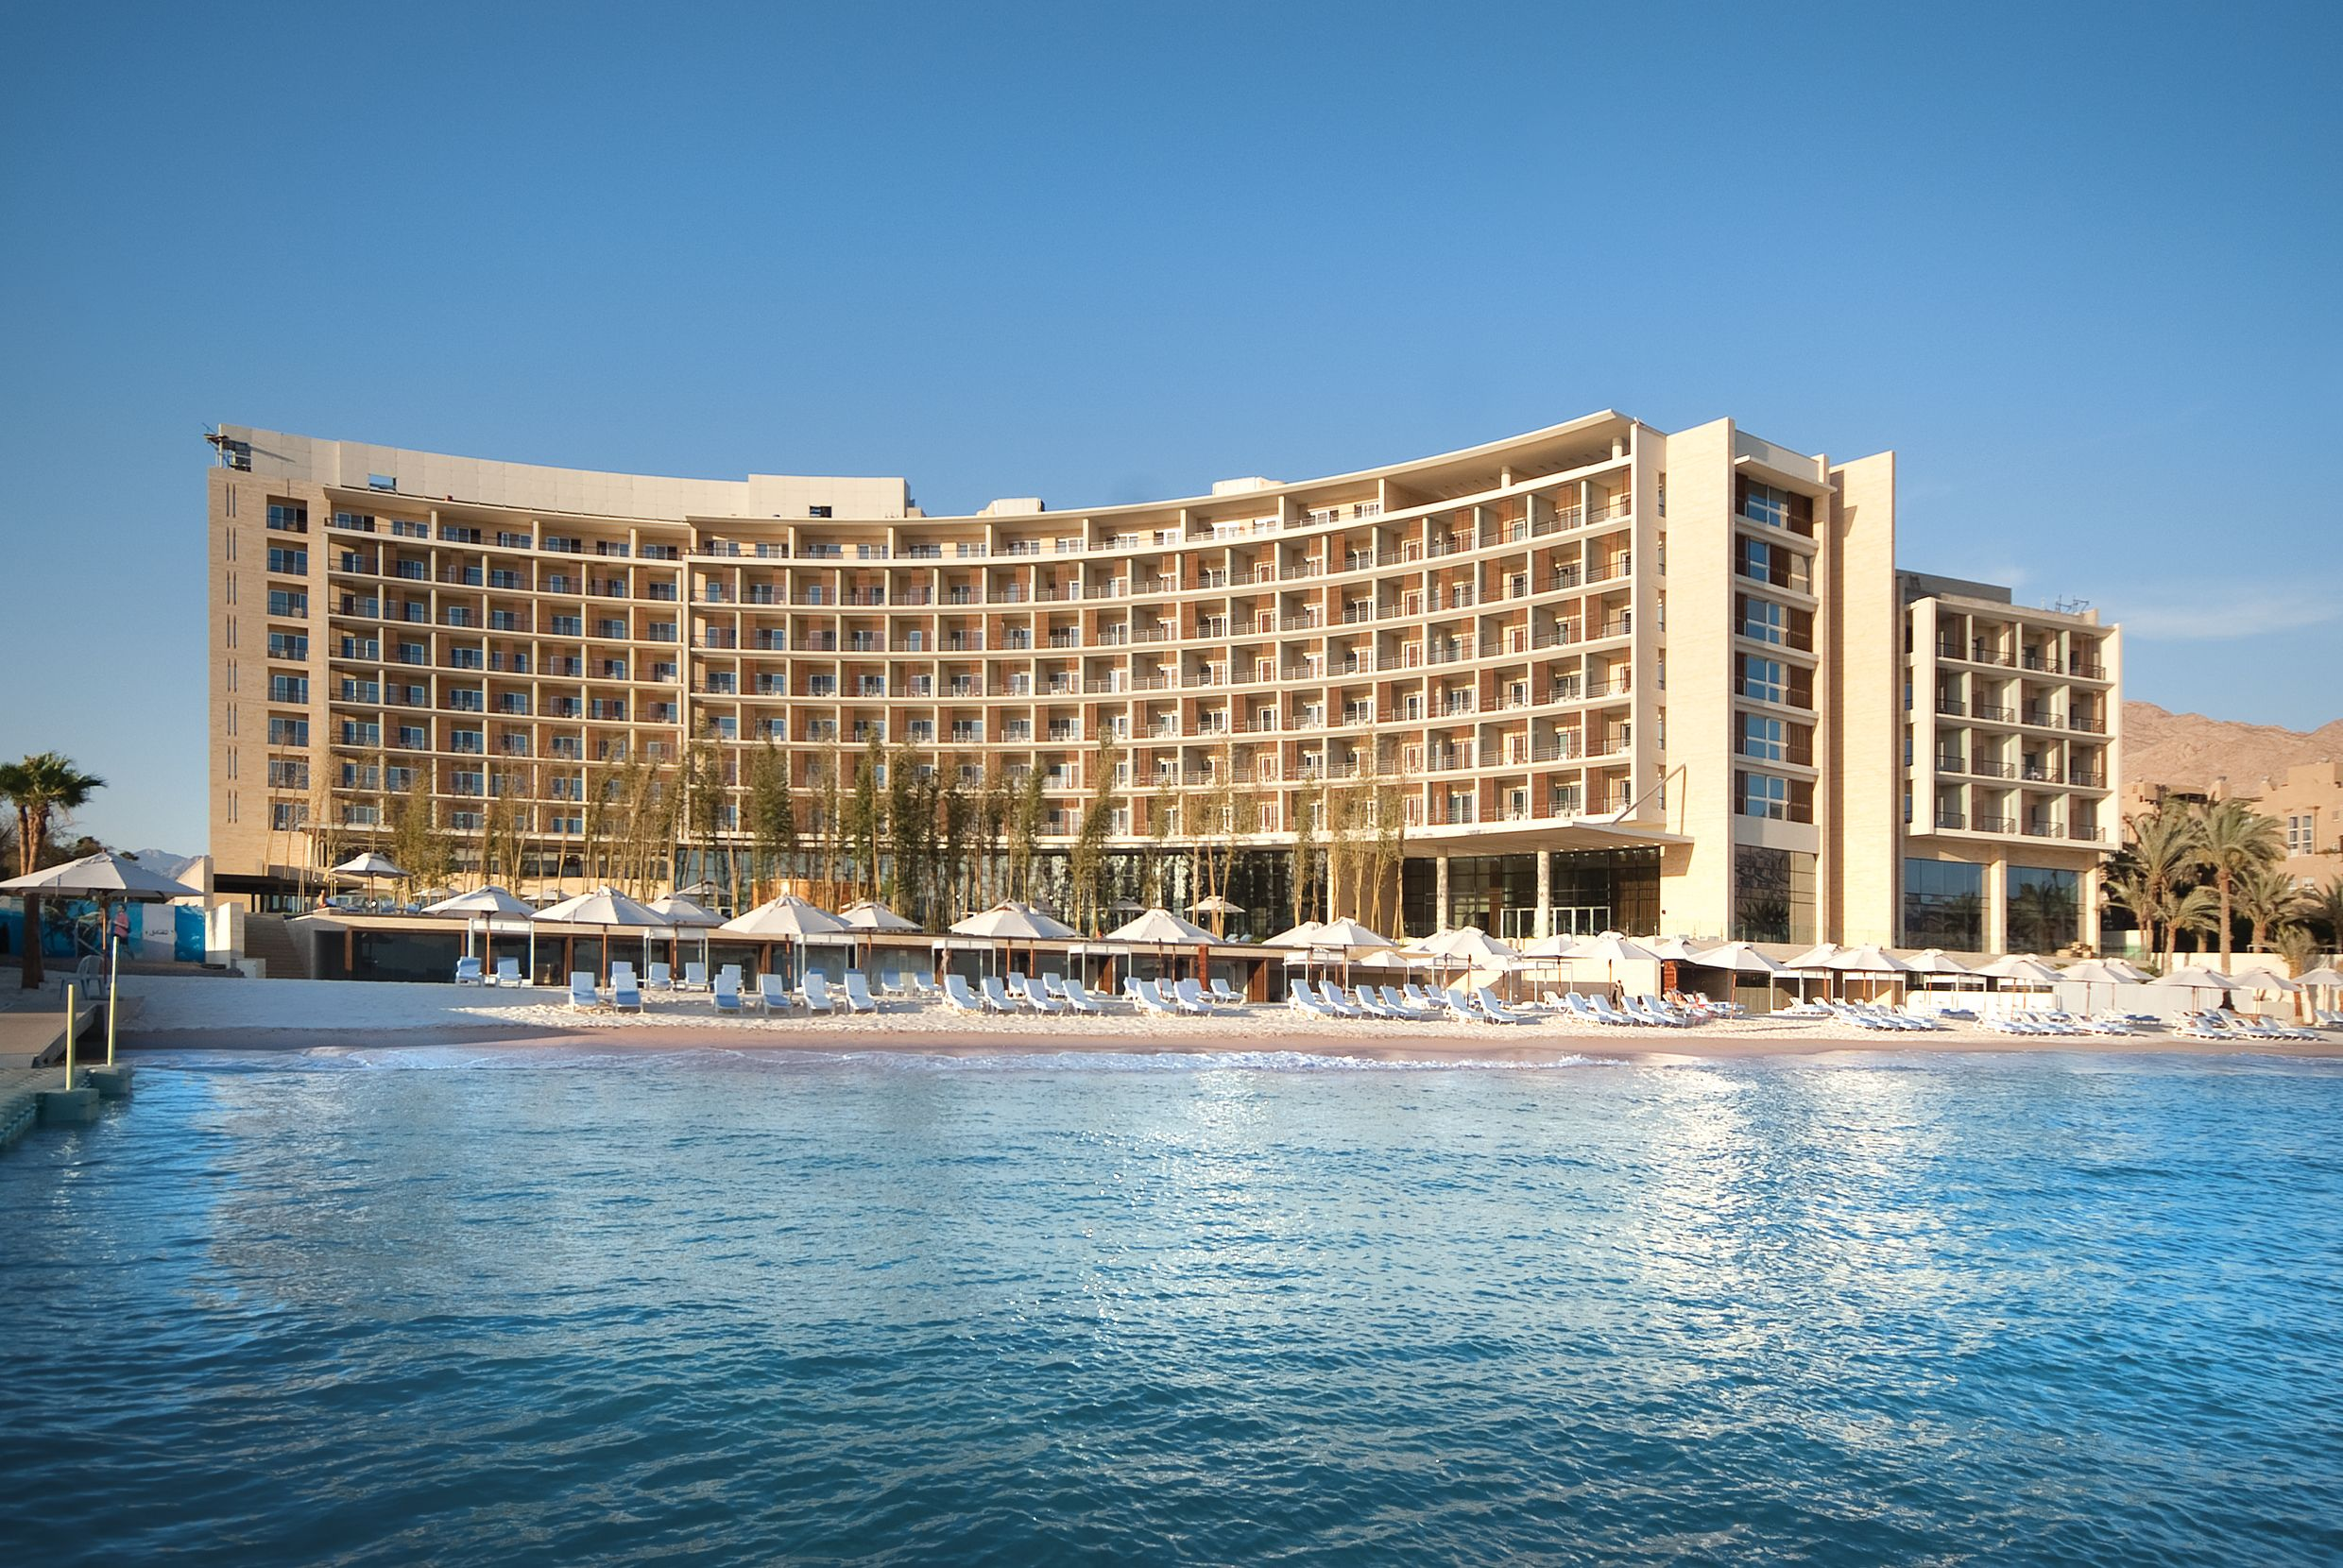 Kempinski Hotel Aqaba, Jordan! The design hotel is perfect because it allows every single guest to enjoy the view over the Red Sea.